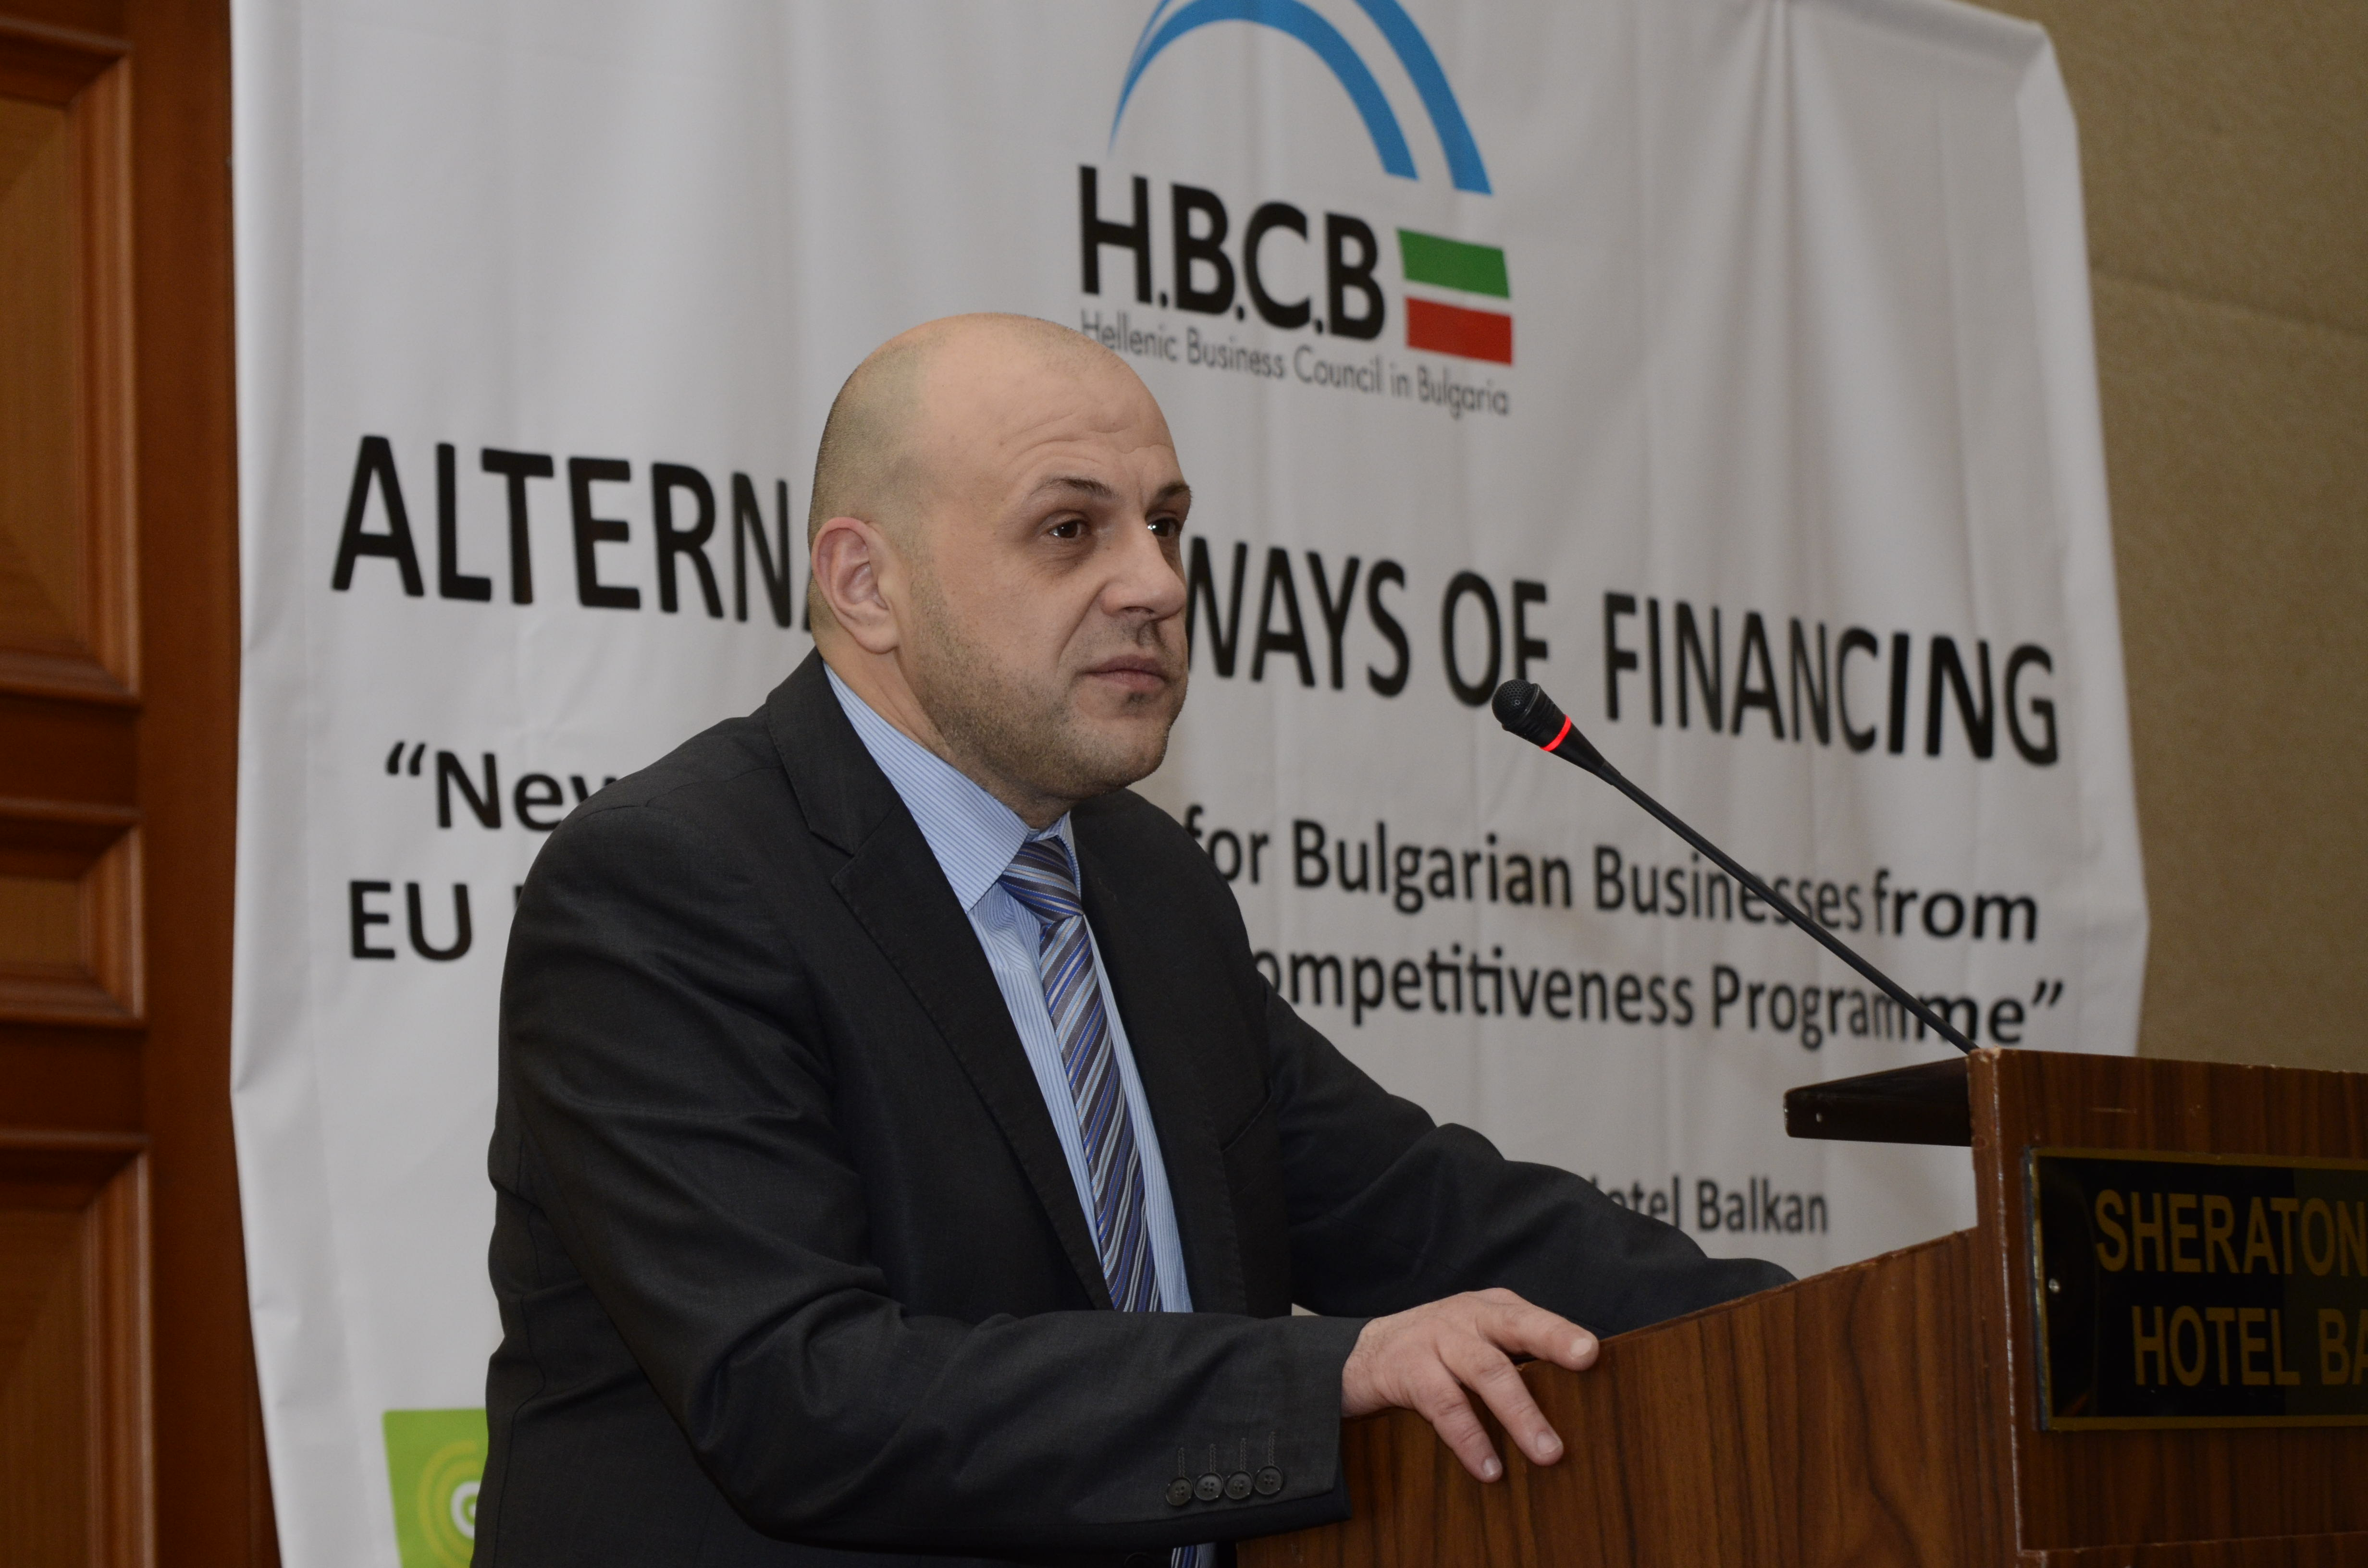 HBCB Information Workshop on Alternative ways of Financing through the Competitiveness Programme